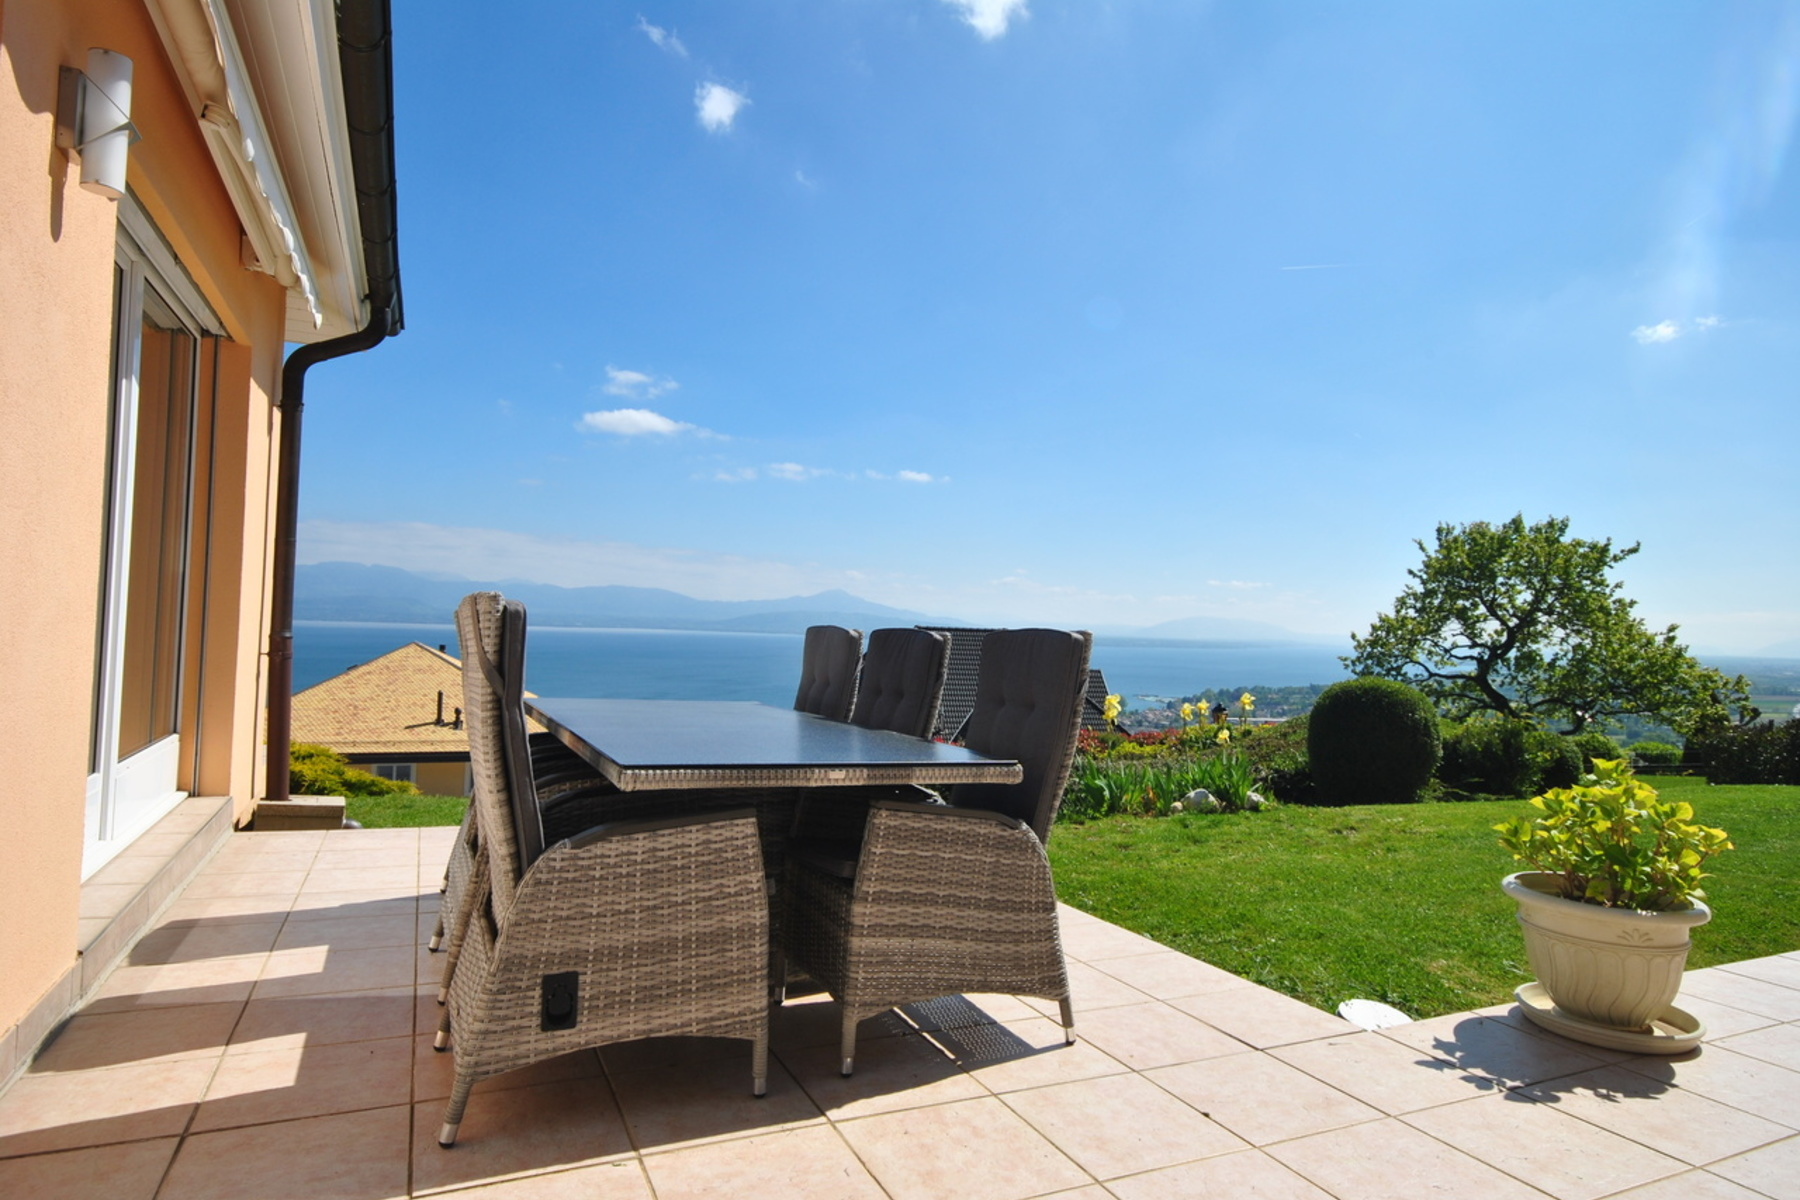 Single Family Home for Sale at Breathtaking panoramic views Perroy Other Switzerland, Other Areas In Switzerland, 1166 Switzerland